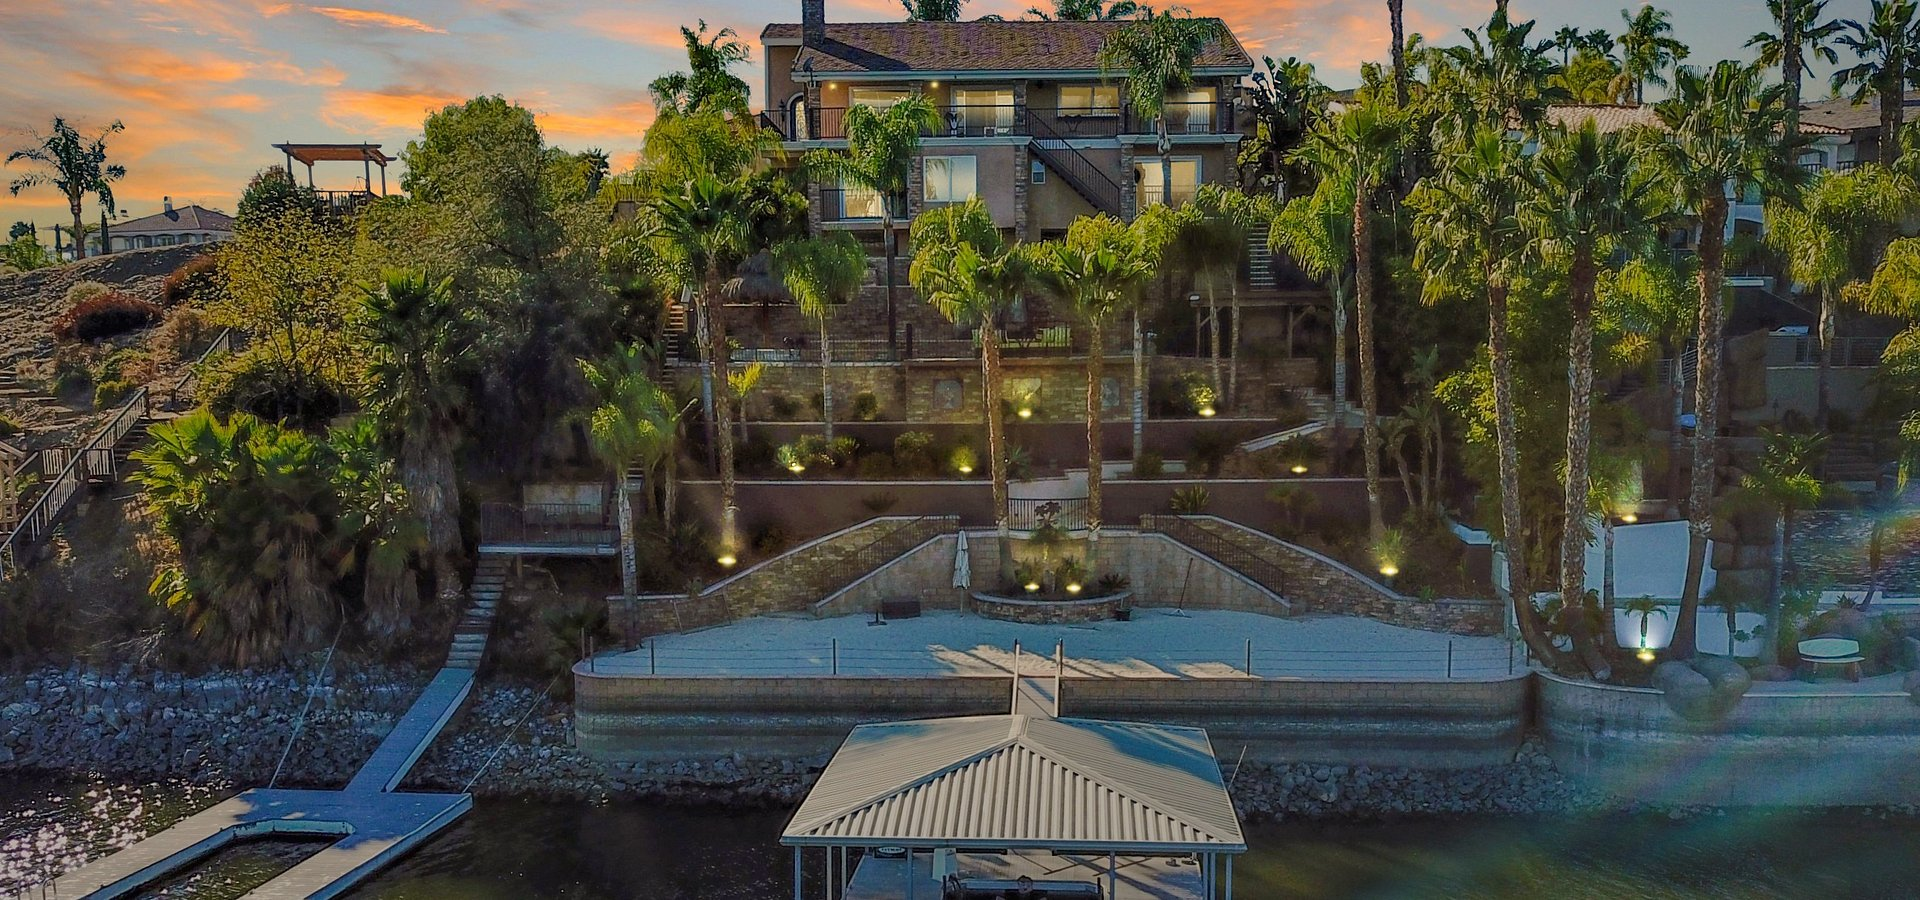 Coldwell Banker Realty Lists a Lakefront Canyon Lake Property for $1.4 Million